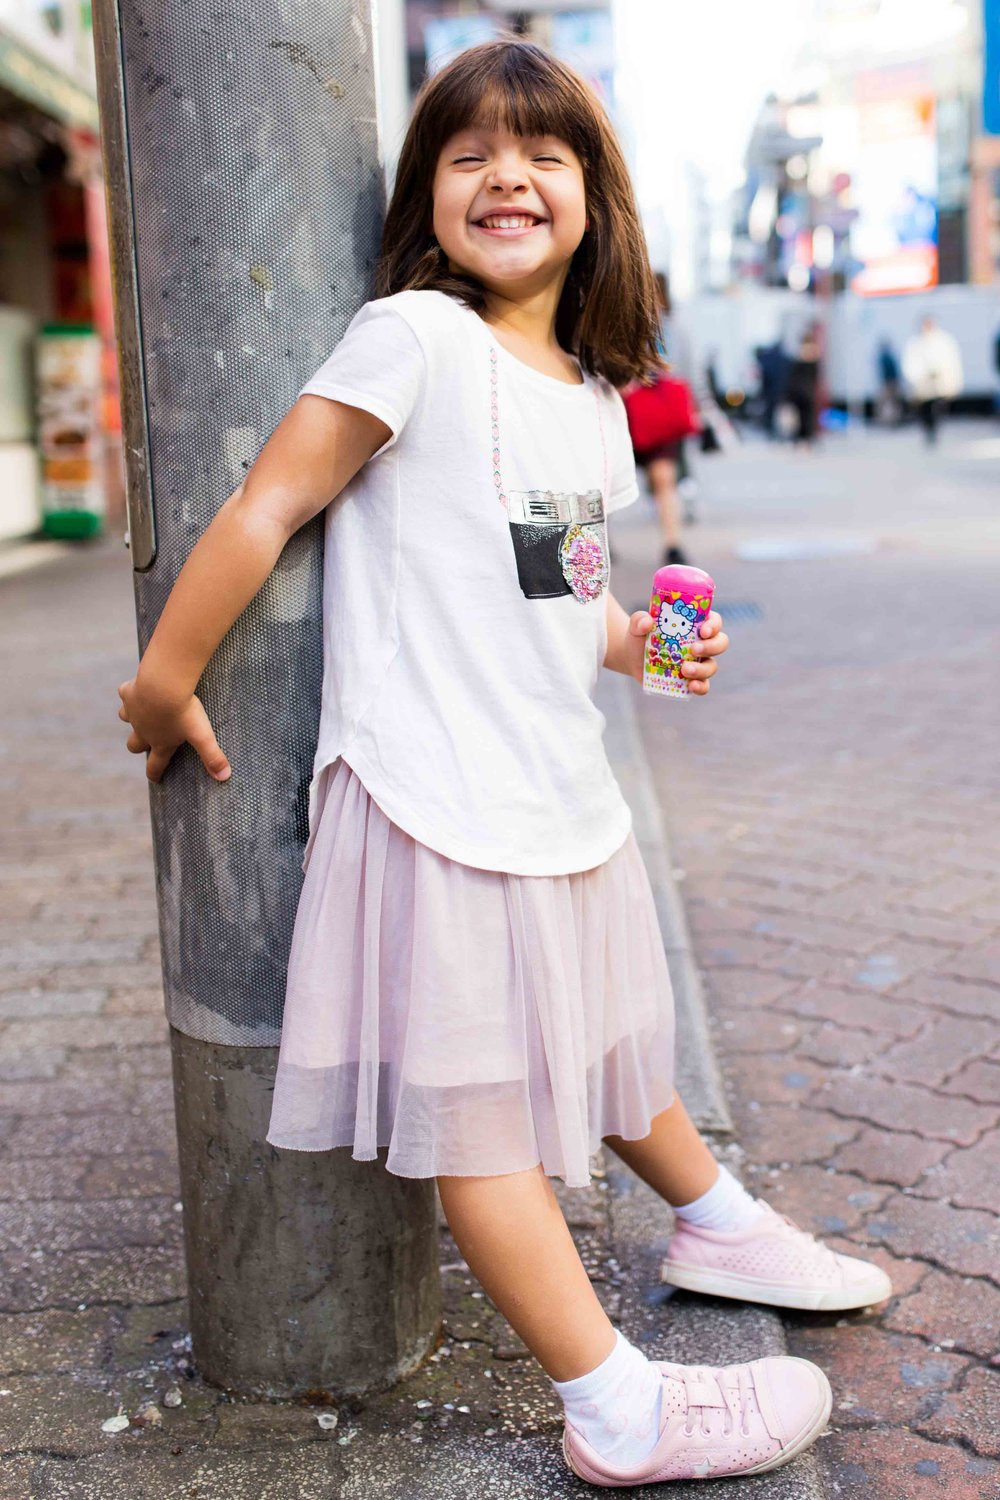 Kids photography on location, Tokyo